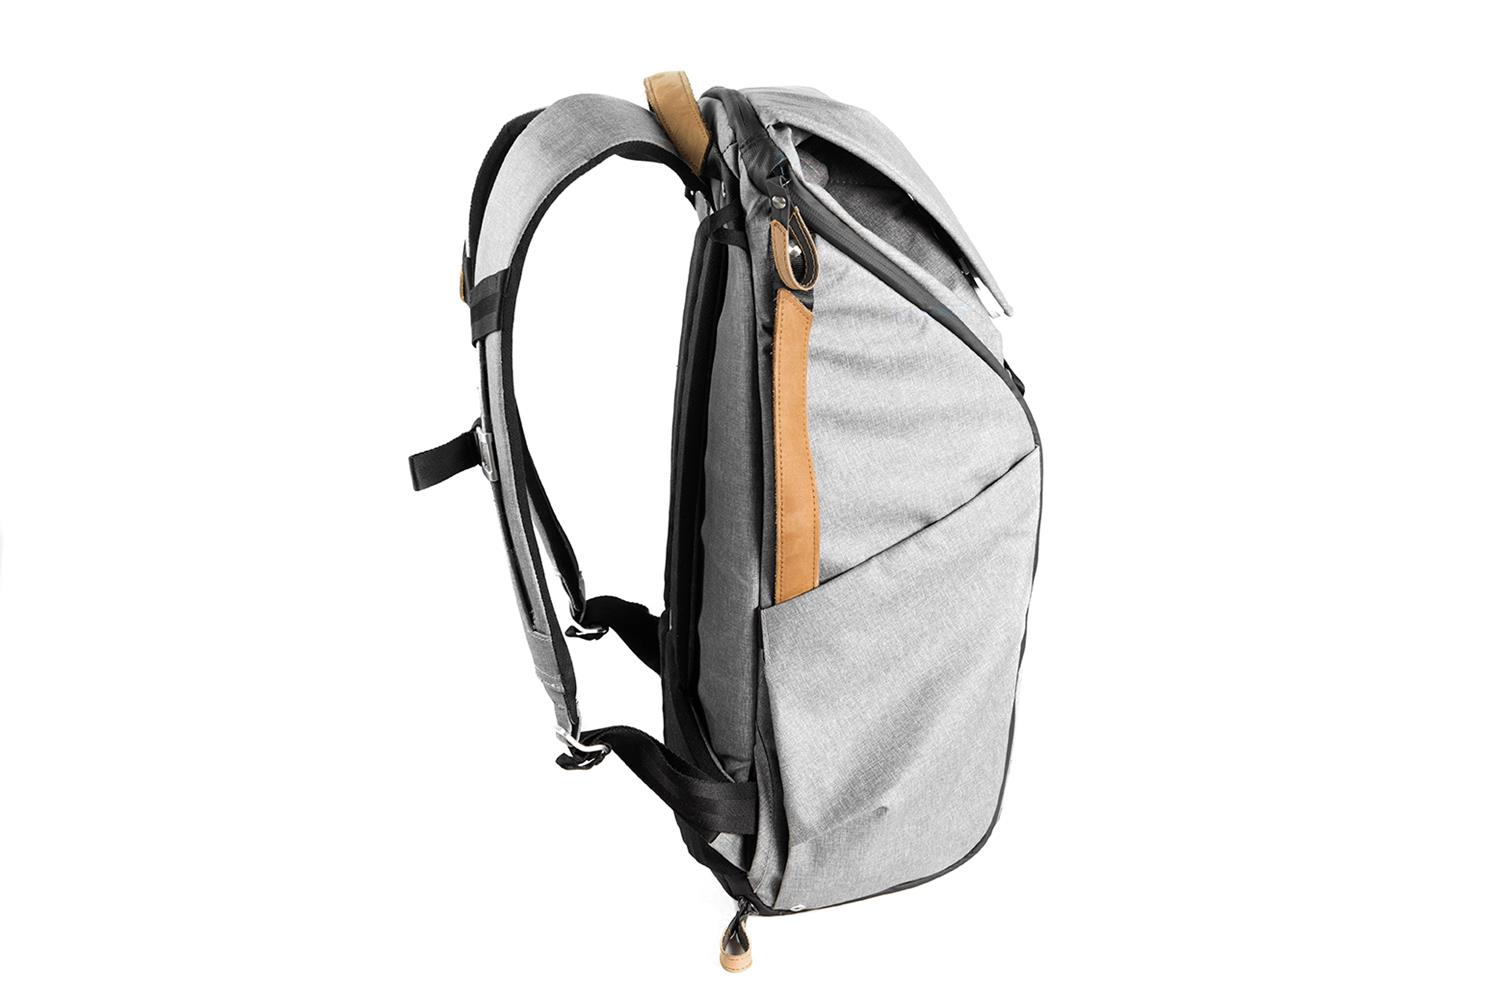 everydaybackpack24.jpg